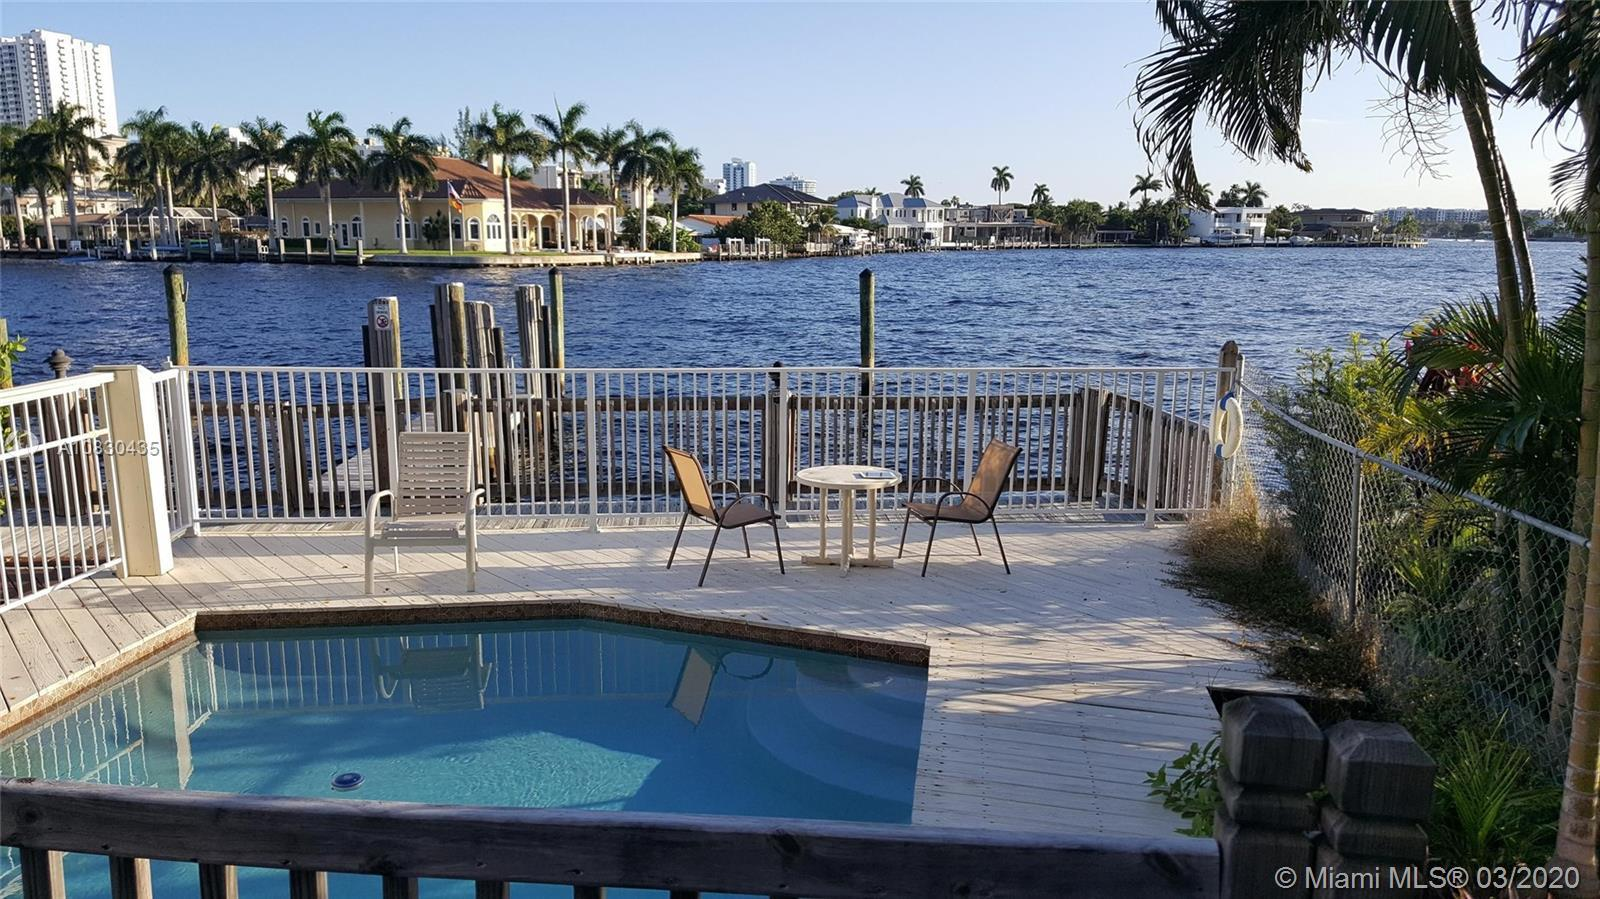 THIS BEAUTIFULL 3 BED 3 BATH TOWNHOME IN ONE OF THE LARGEST WATERWAY, LAKE SANTA BARBARA, INTERCOSTA